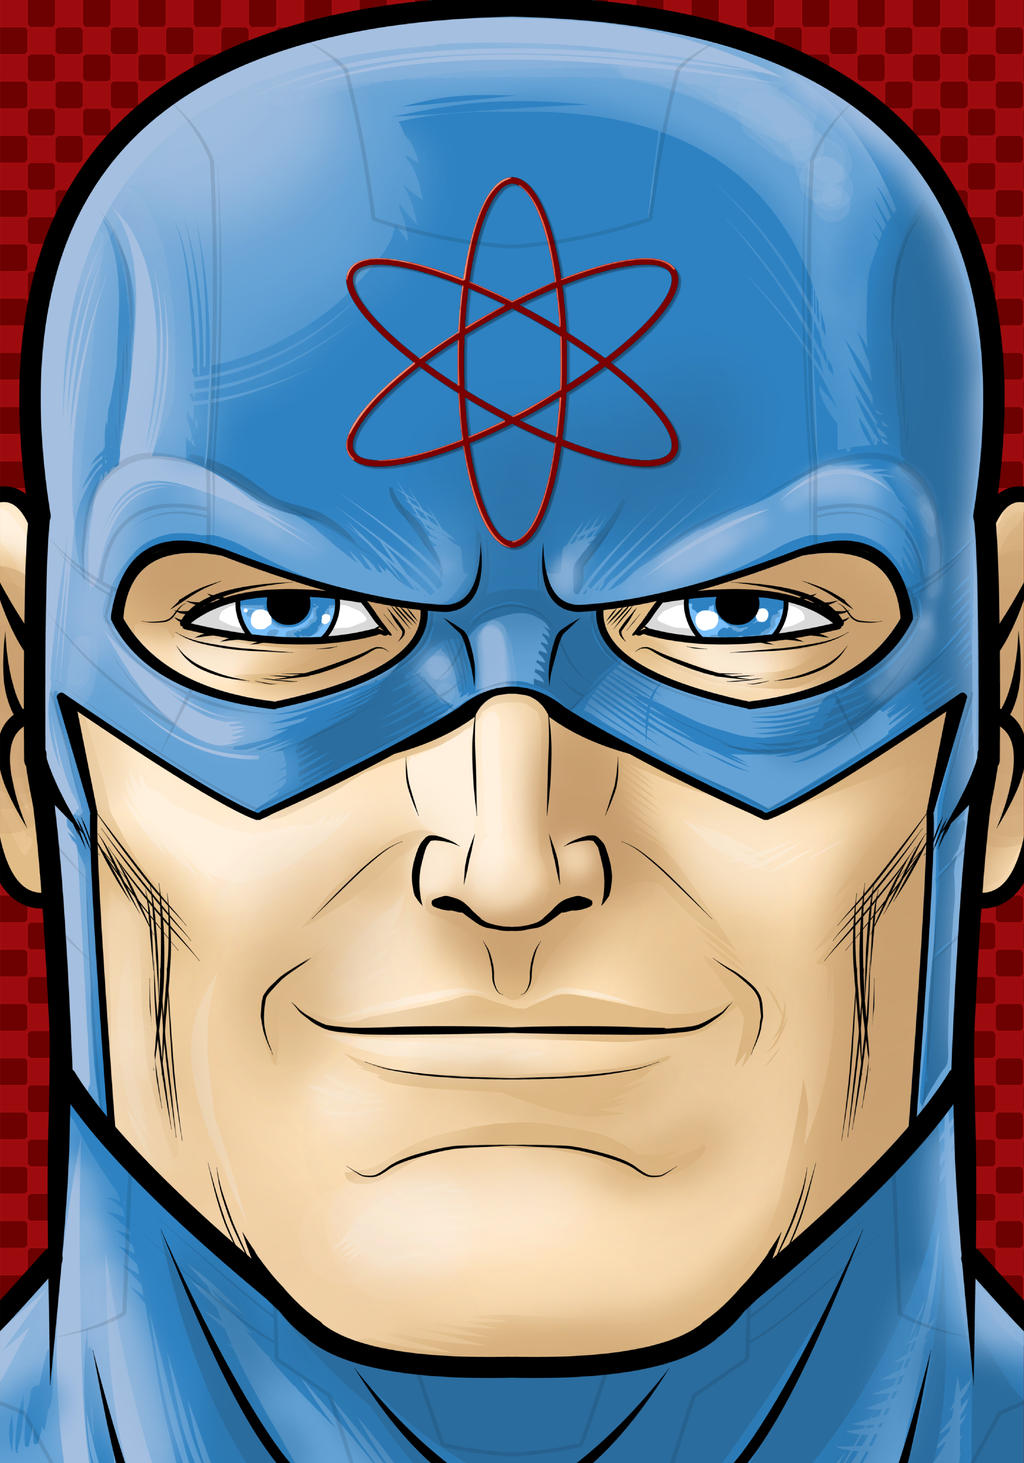 Atom by Thuddleston